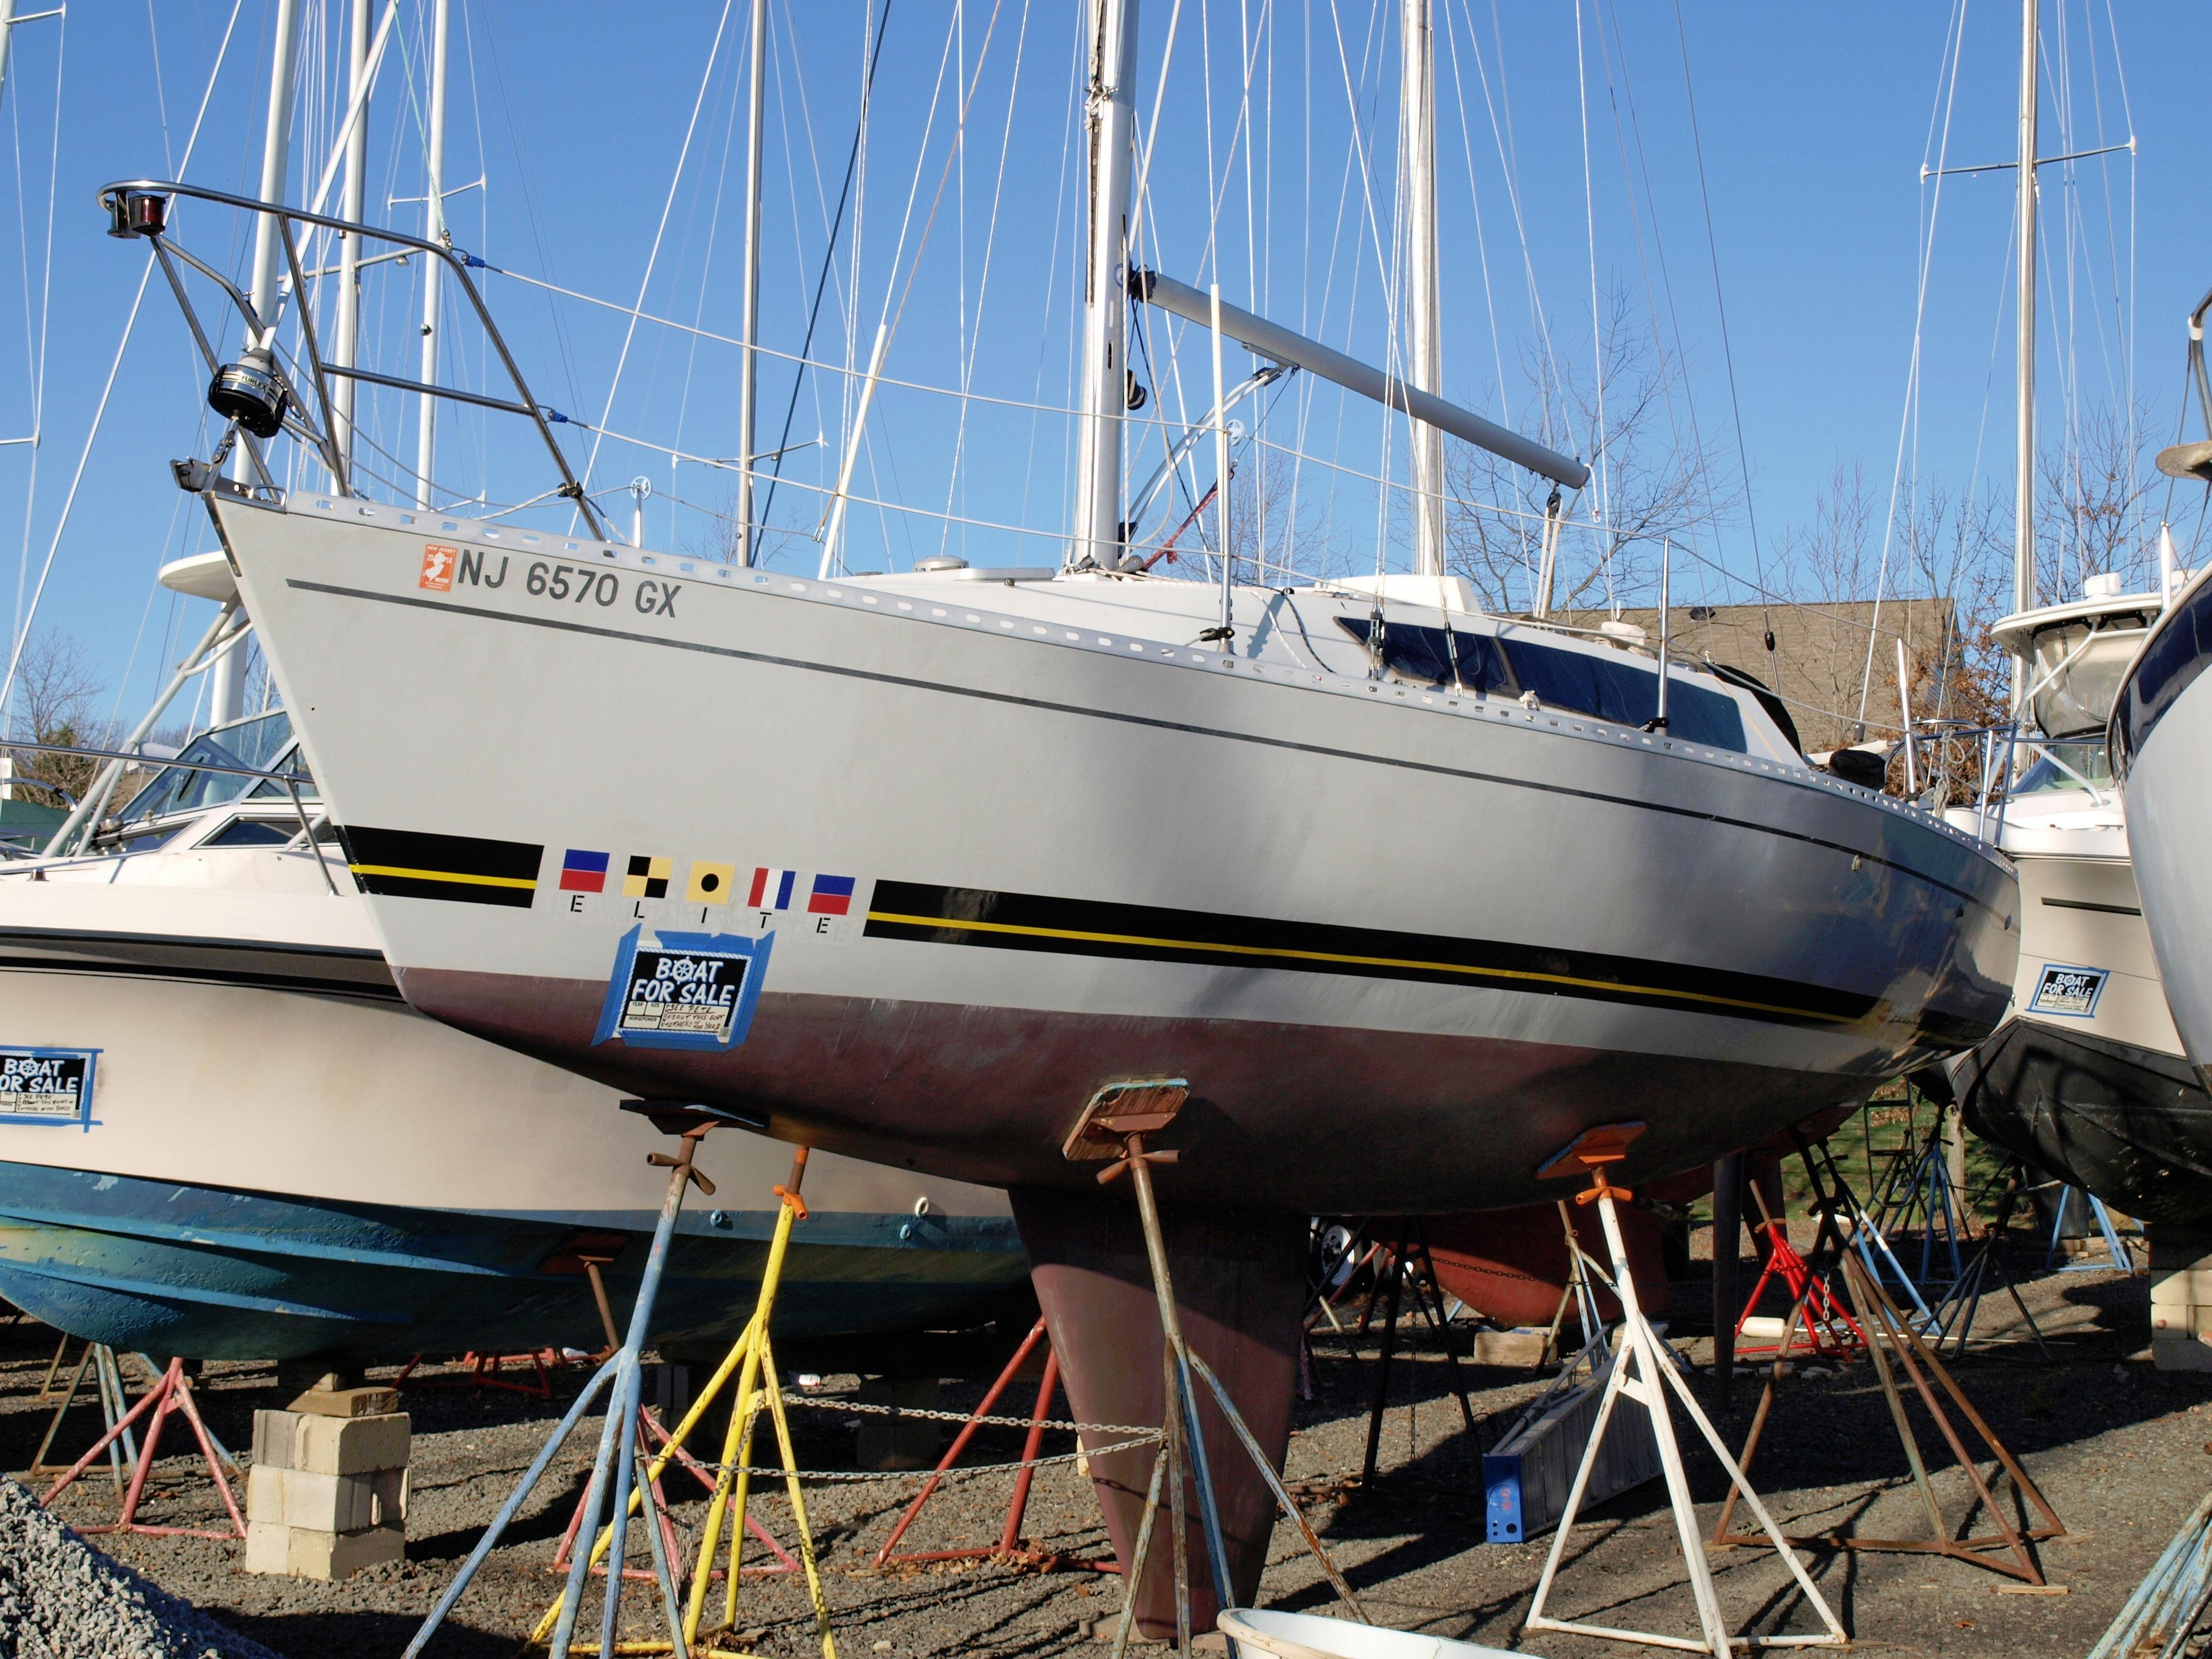 1986 Kirie Elite 30s Sail Boat For Sale Www Yachtworld Com